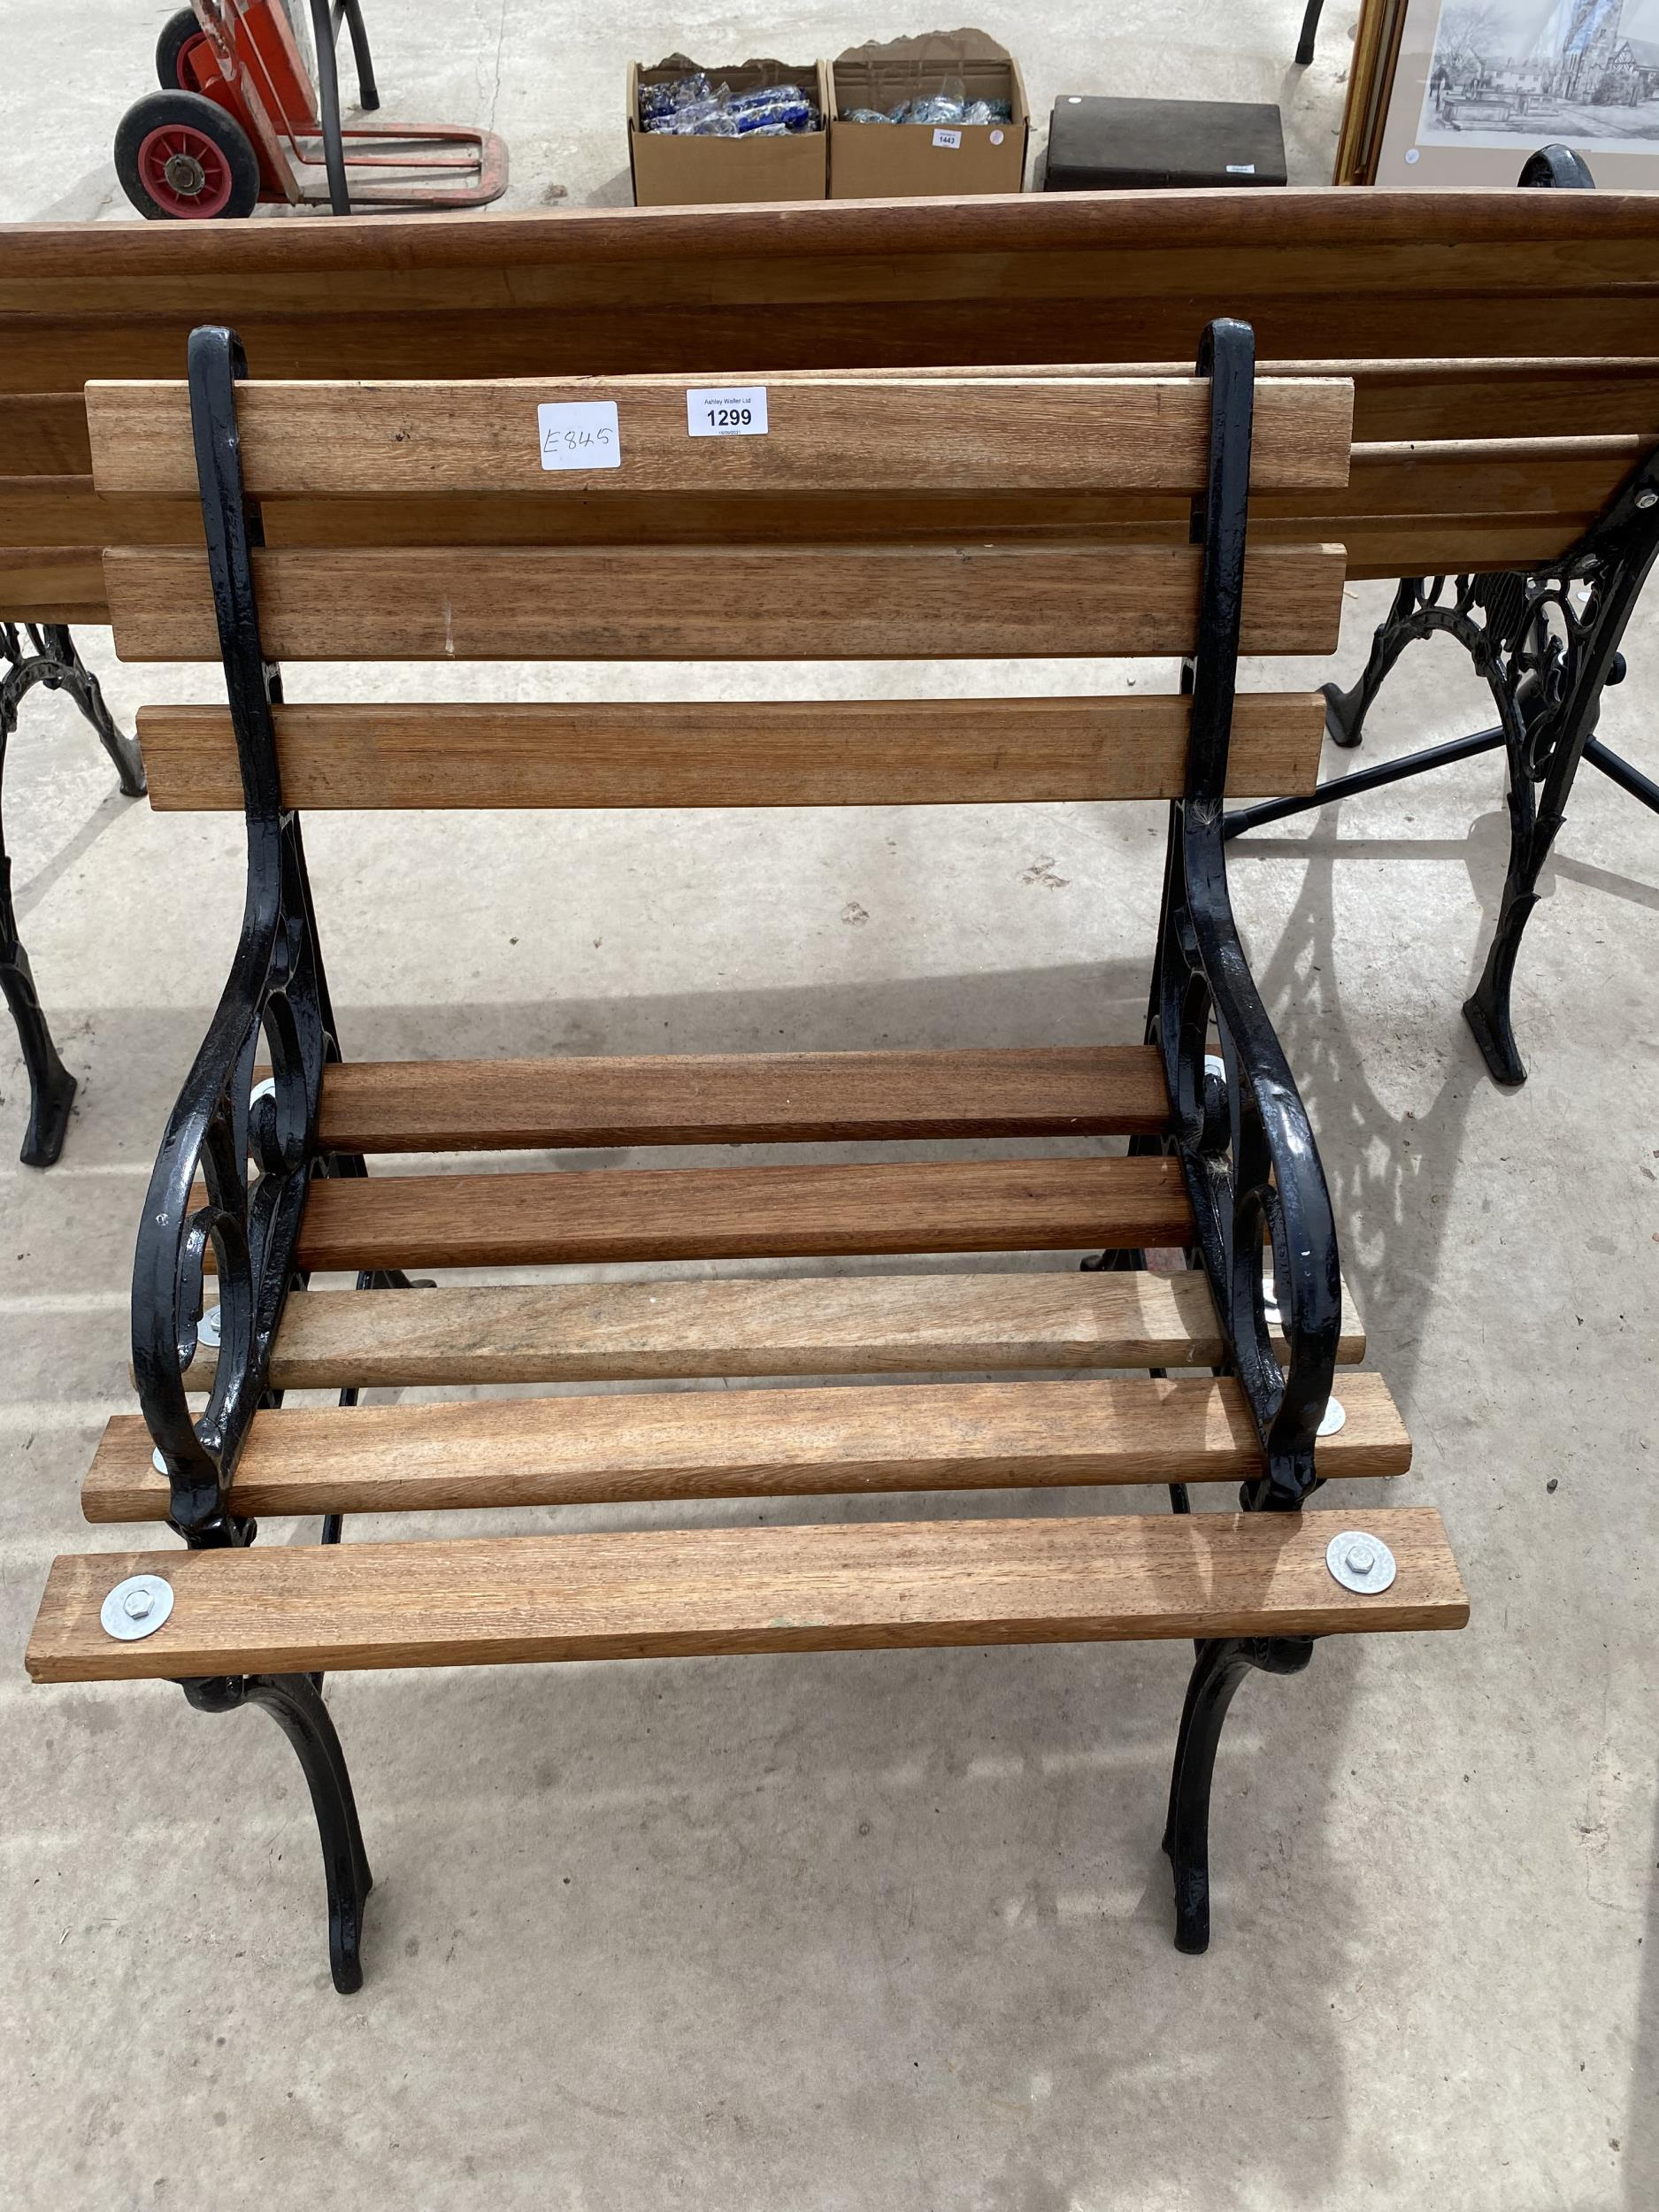 A WOODEN SLATTED GARDEN CHAIR WITH CAST IRON ENDS